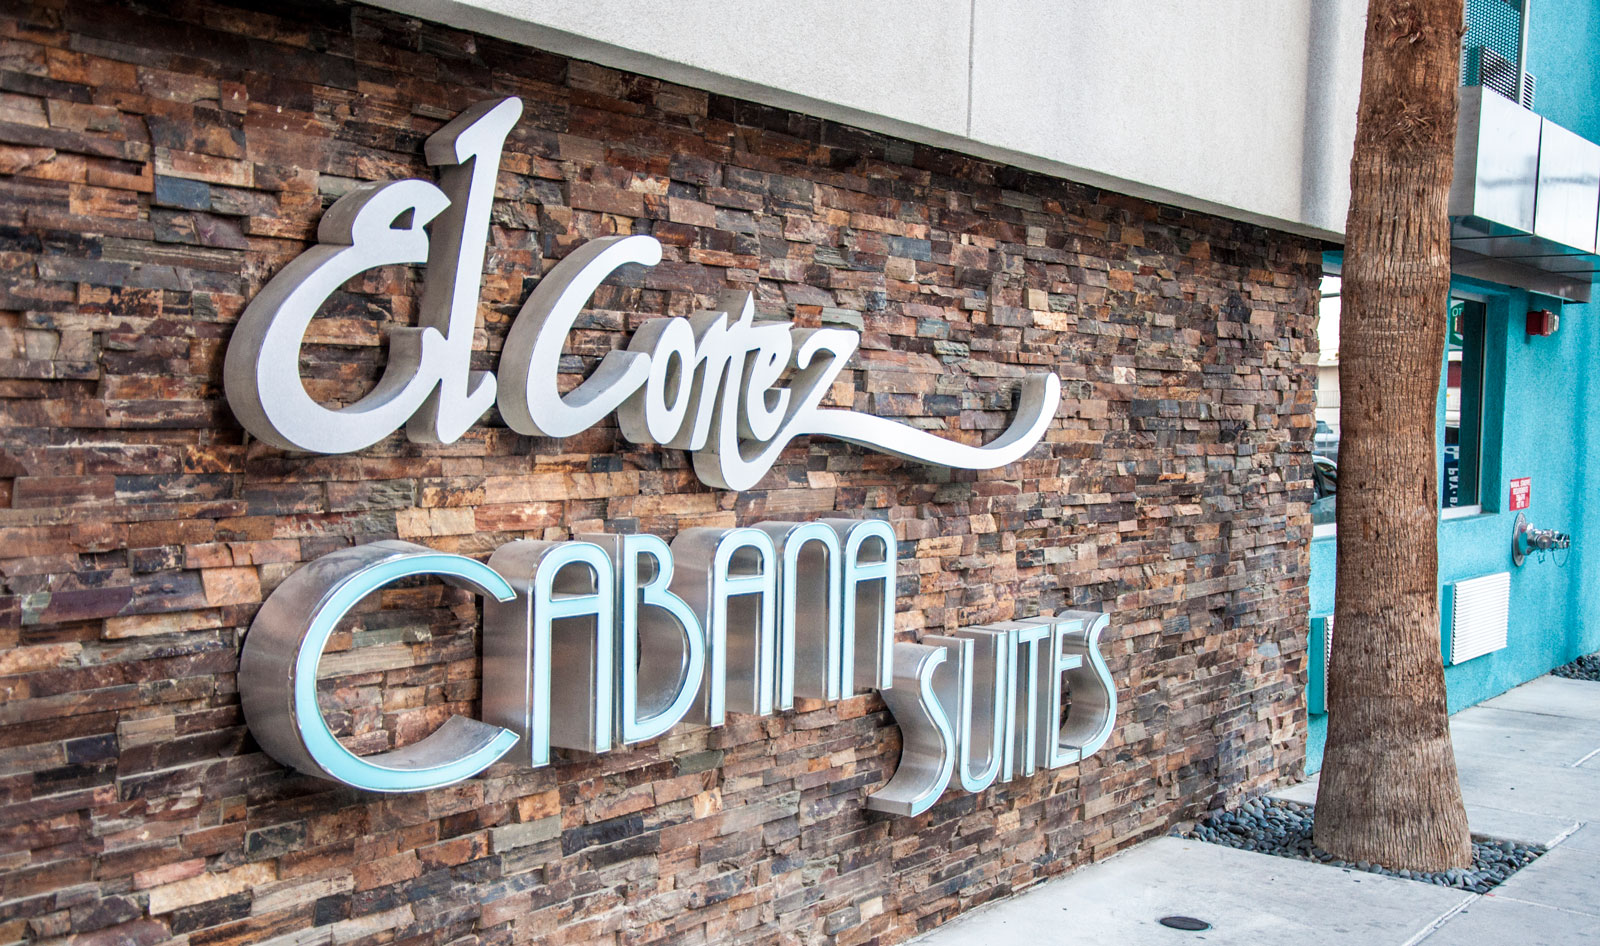 El Cortez Cabana Suites sign